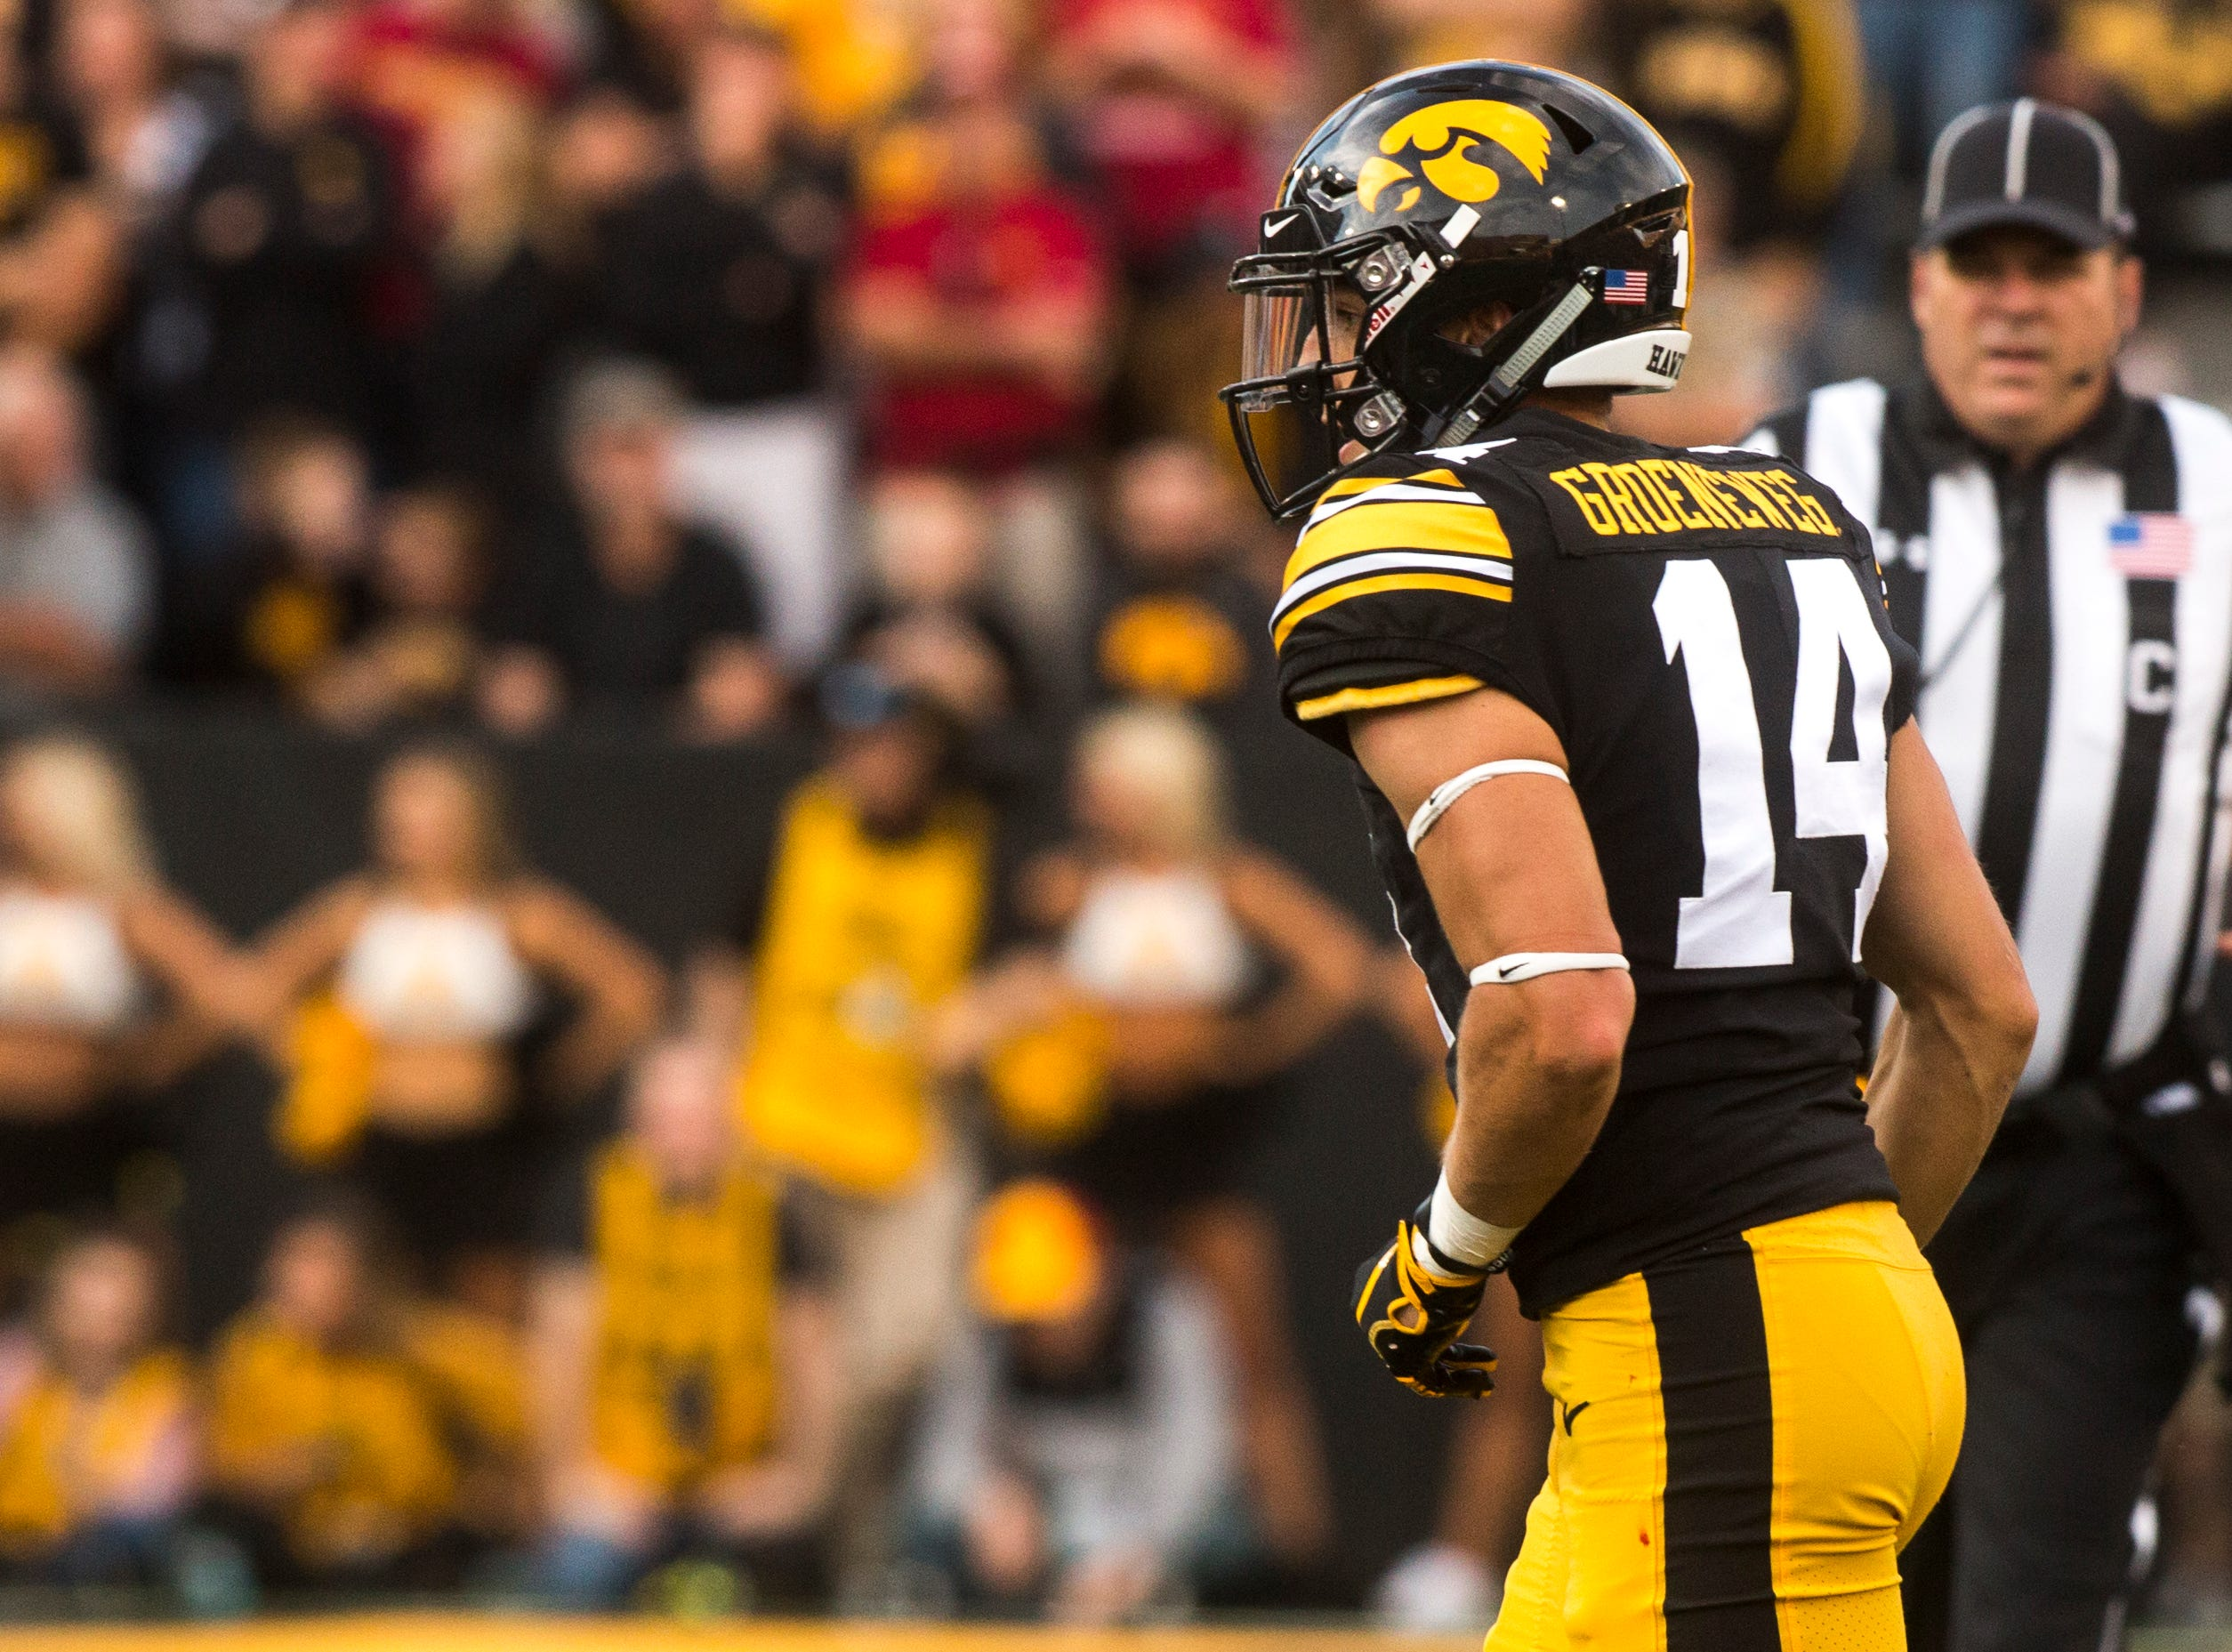 Iowa wide receiver Kyle Groeneweg (14) runs to the sideline during the Cy-Hawk NCAA football game on Saturday, Sept. 8, 2018, at Kinnick Stadium in Iowa City.